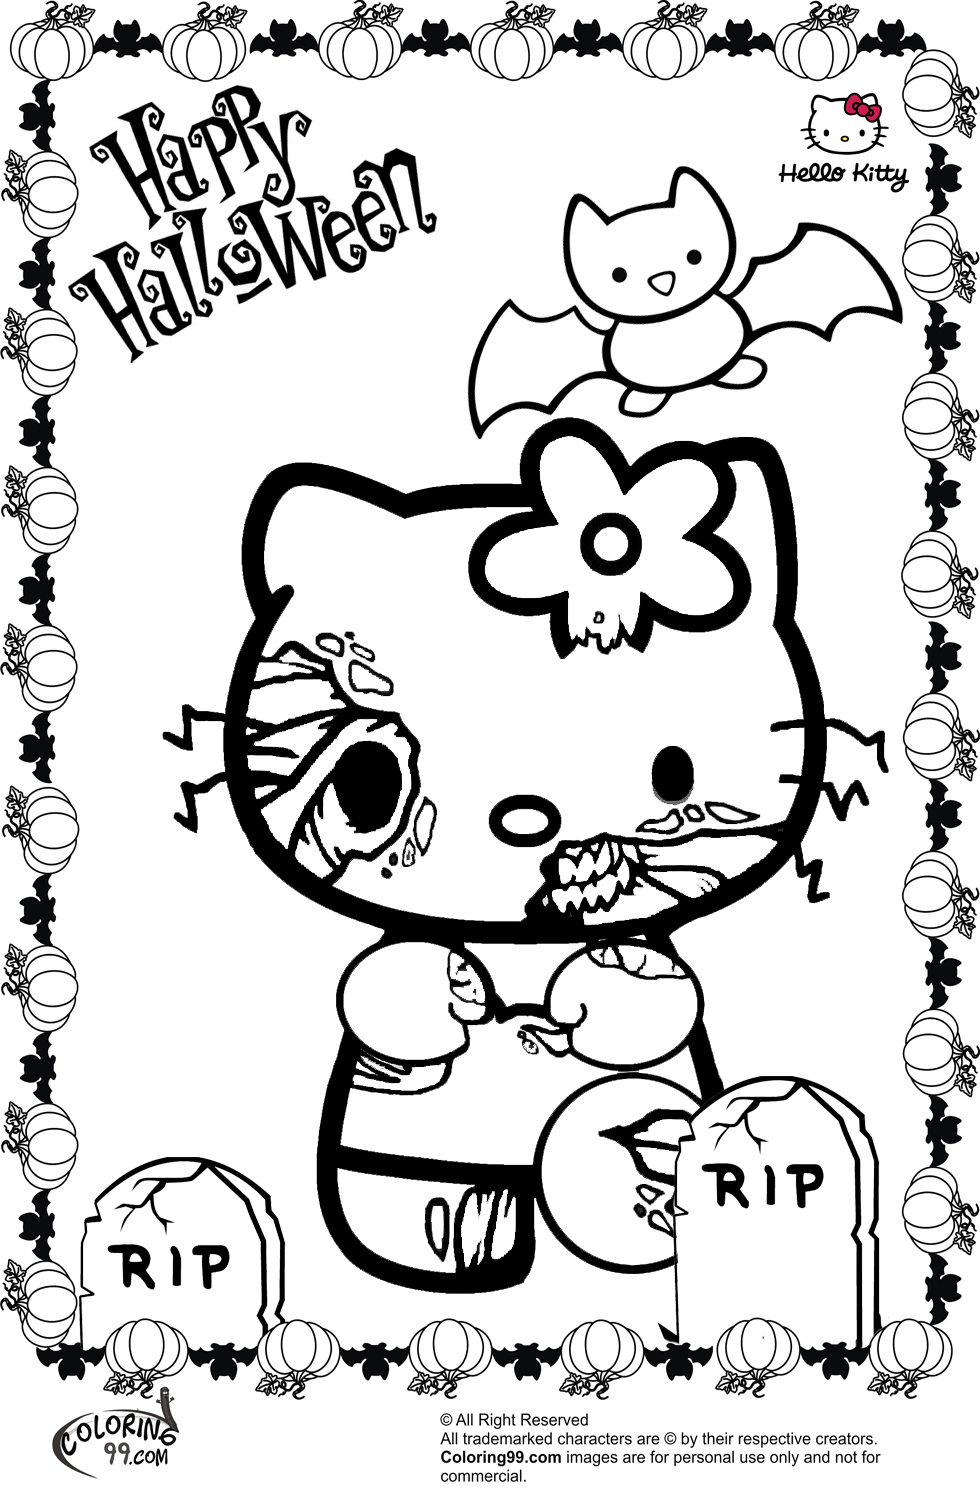 coloring sheets for halloween 30 cute halloween coloring pages for kids scribblefun for sheets halloween coloring